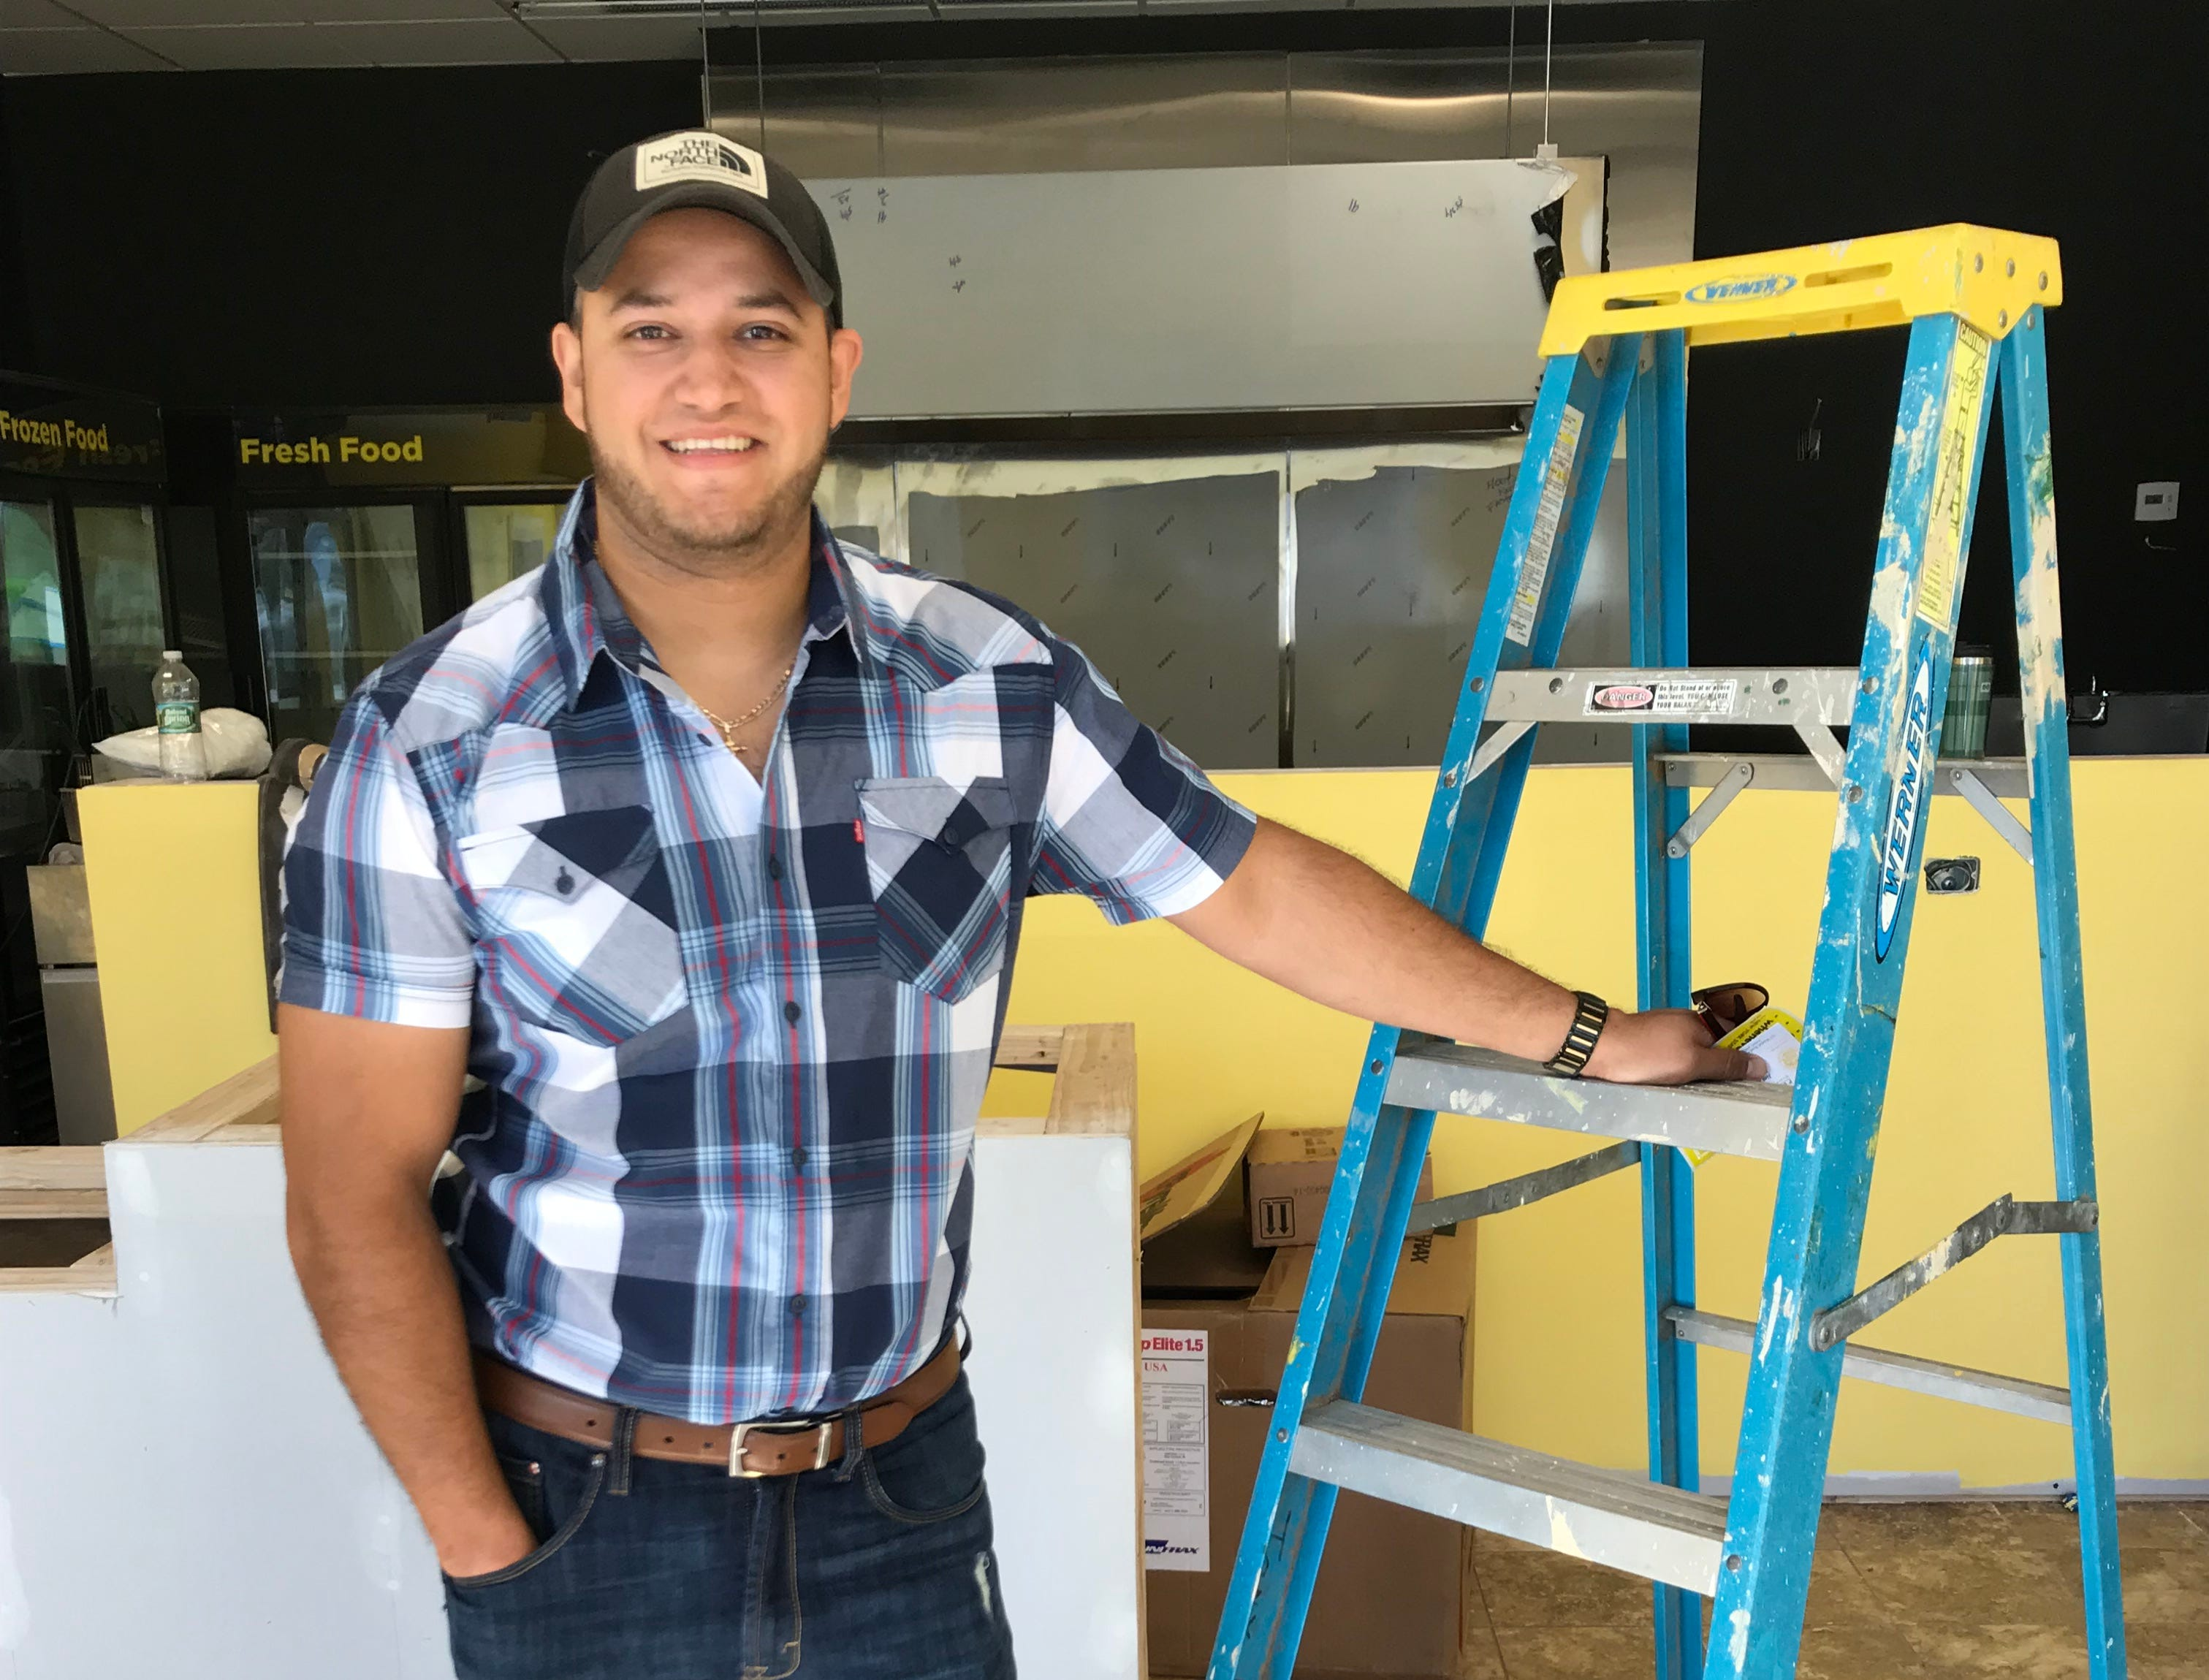 Mauricio Hernandez, a partner in Itacate, stands in the Chili location, under construction.